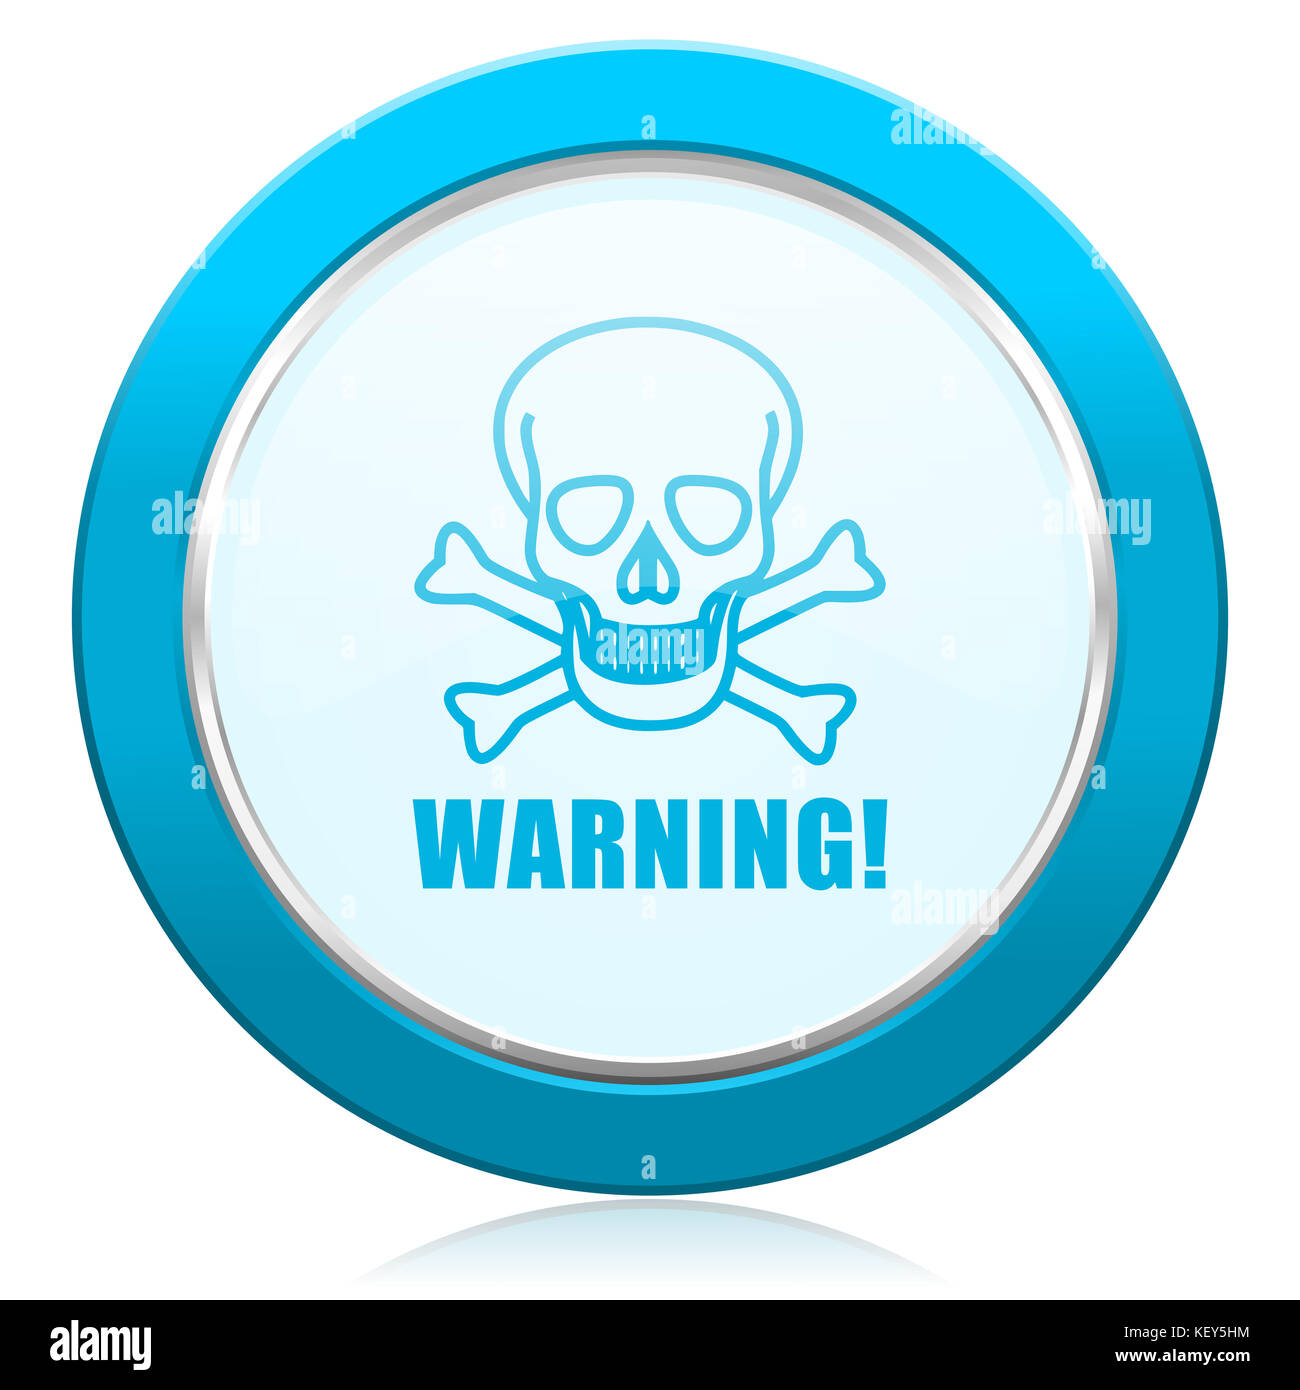 Warning skull blue chrome silver metallic border web icon. Round button for internet and mobile phone application Stock Photo